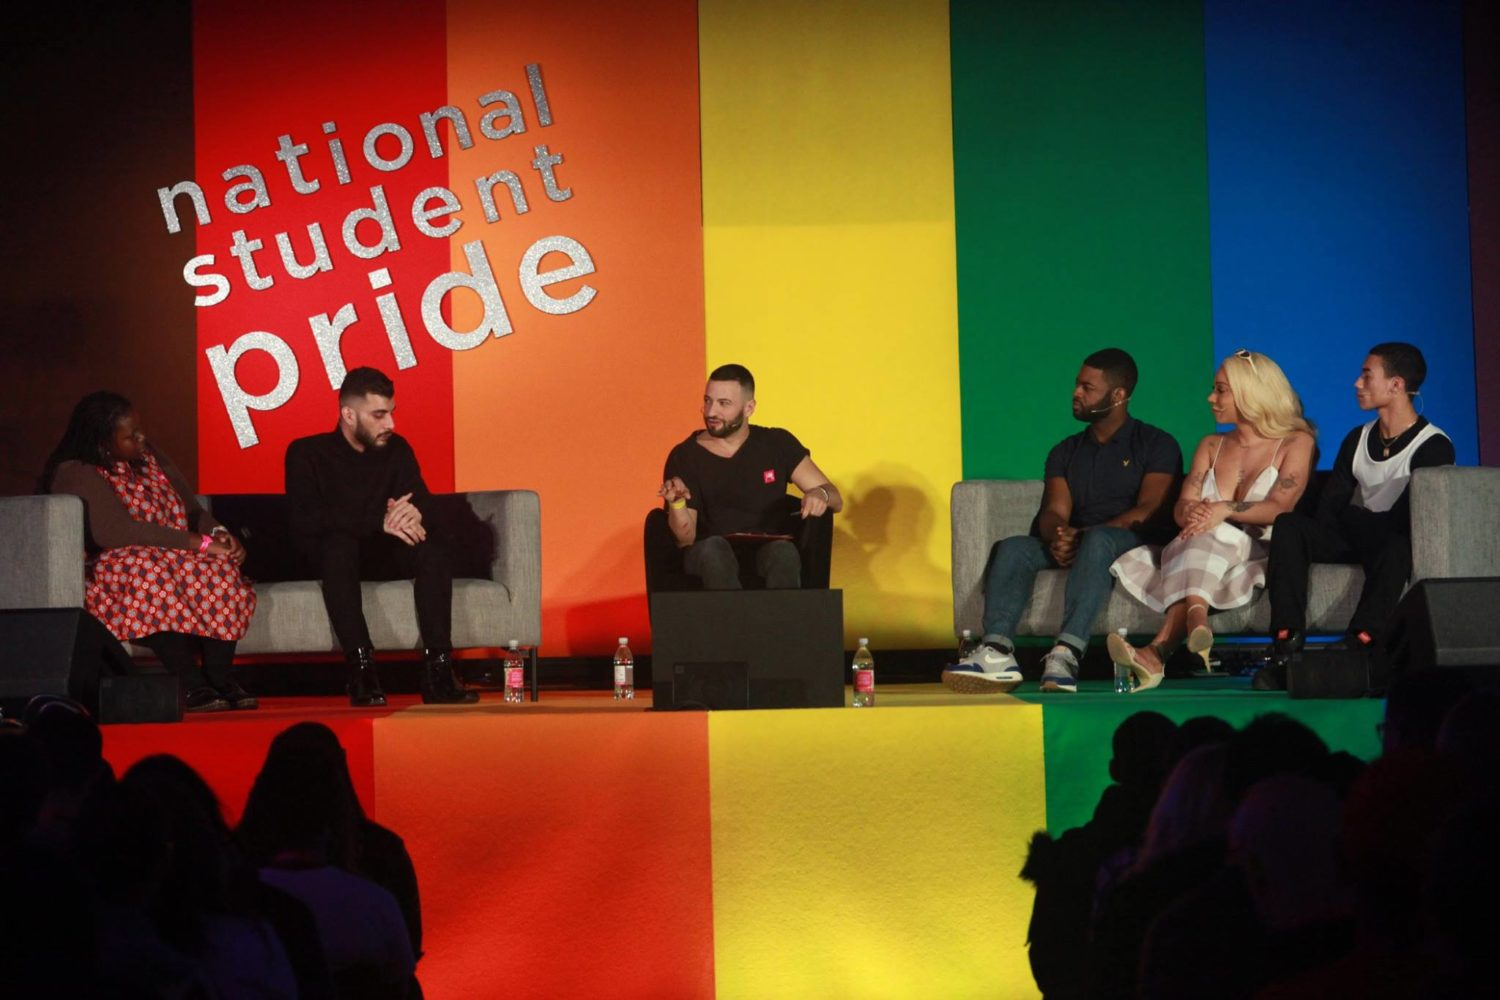 Pride Not Prejudice discussion with Attitude Magazine will see Model Munroe Bergdorf, BBC LGBT correspondent Ben Hunte, Model Reece King, Brexit whistle-blower Shamir Sanni and UK Black Pride representative Moud Gouba.